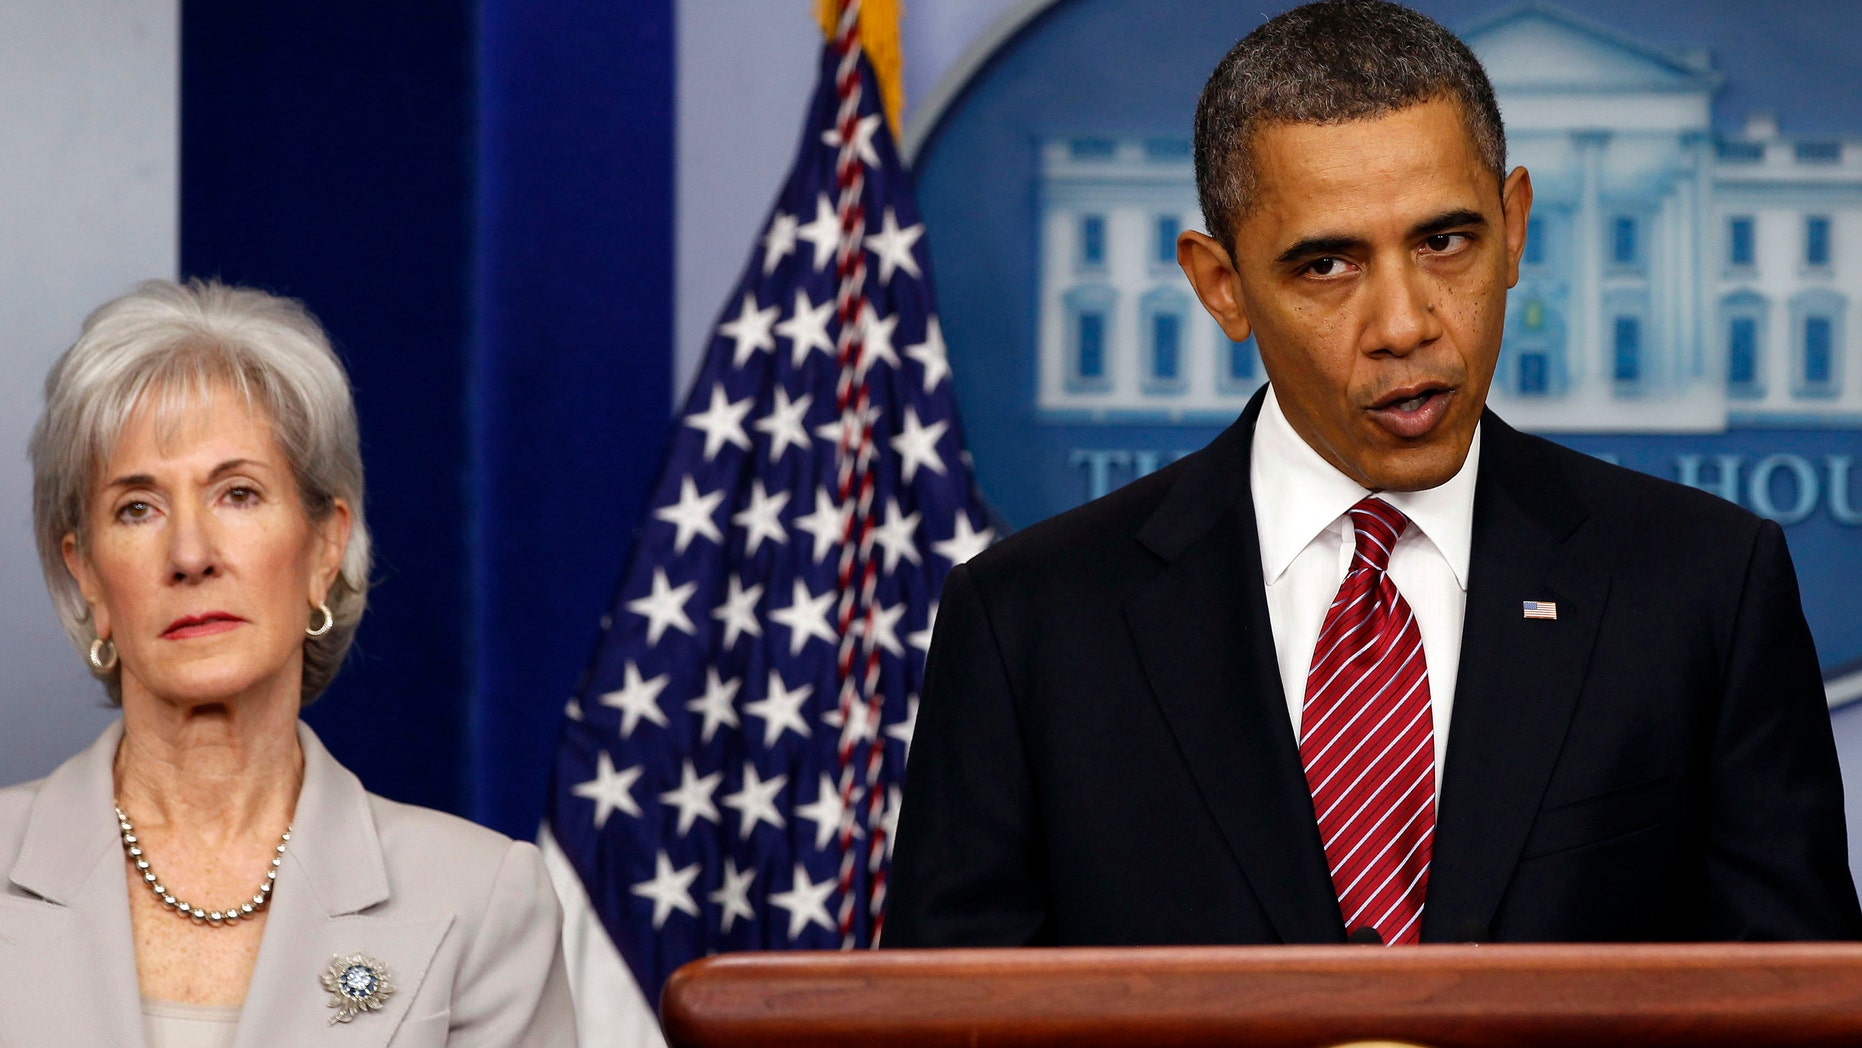 U.S. President Barack Obama makes a statement next to Secretary of HHS Kathleen Sebelius about contraceptive care funding in the press room of the White House in Washington.